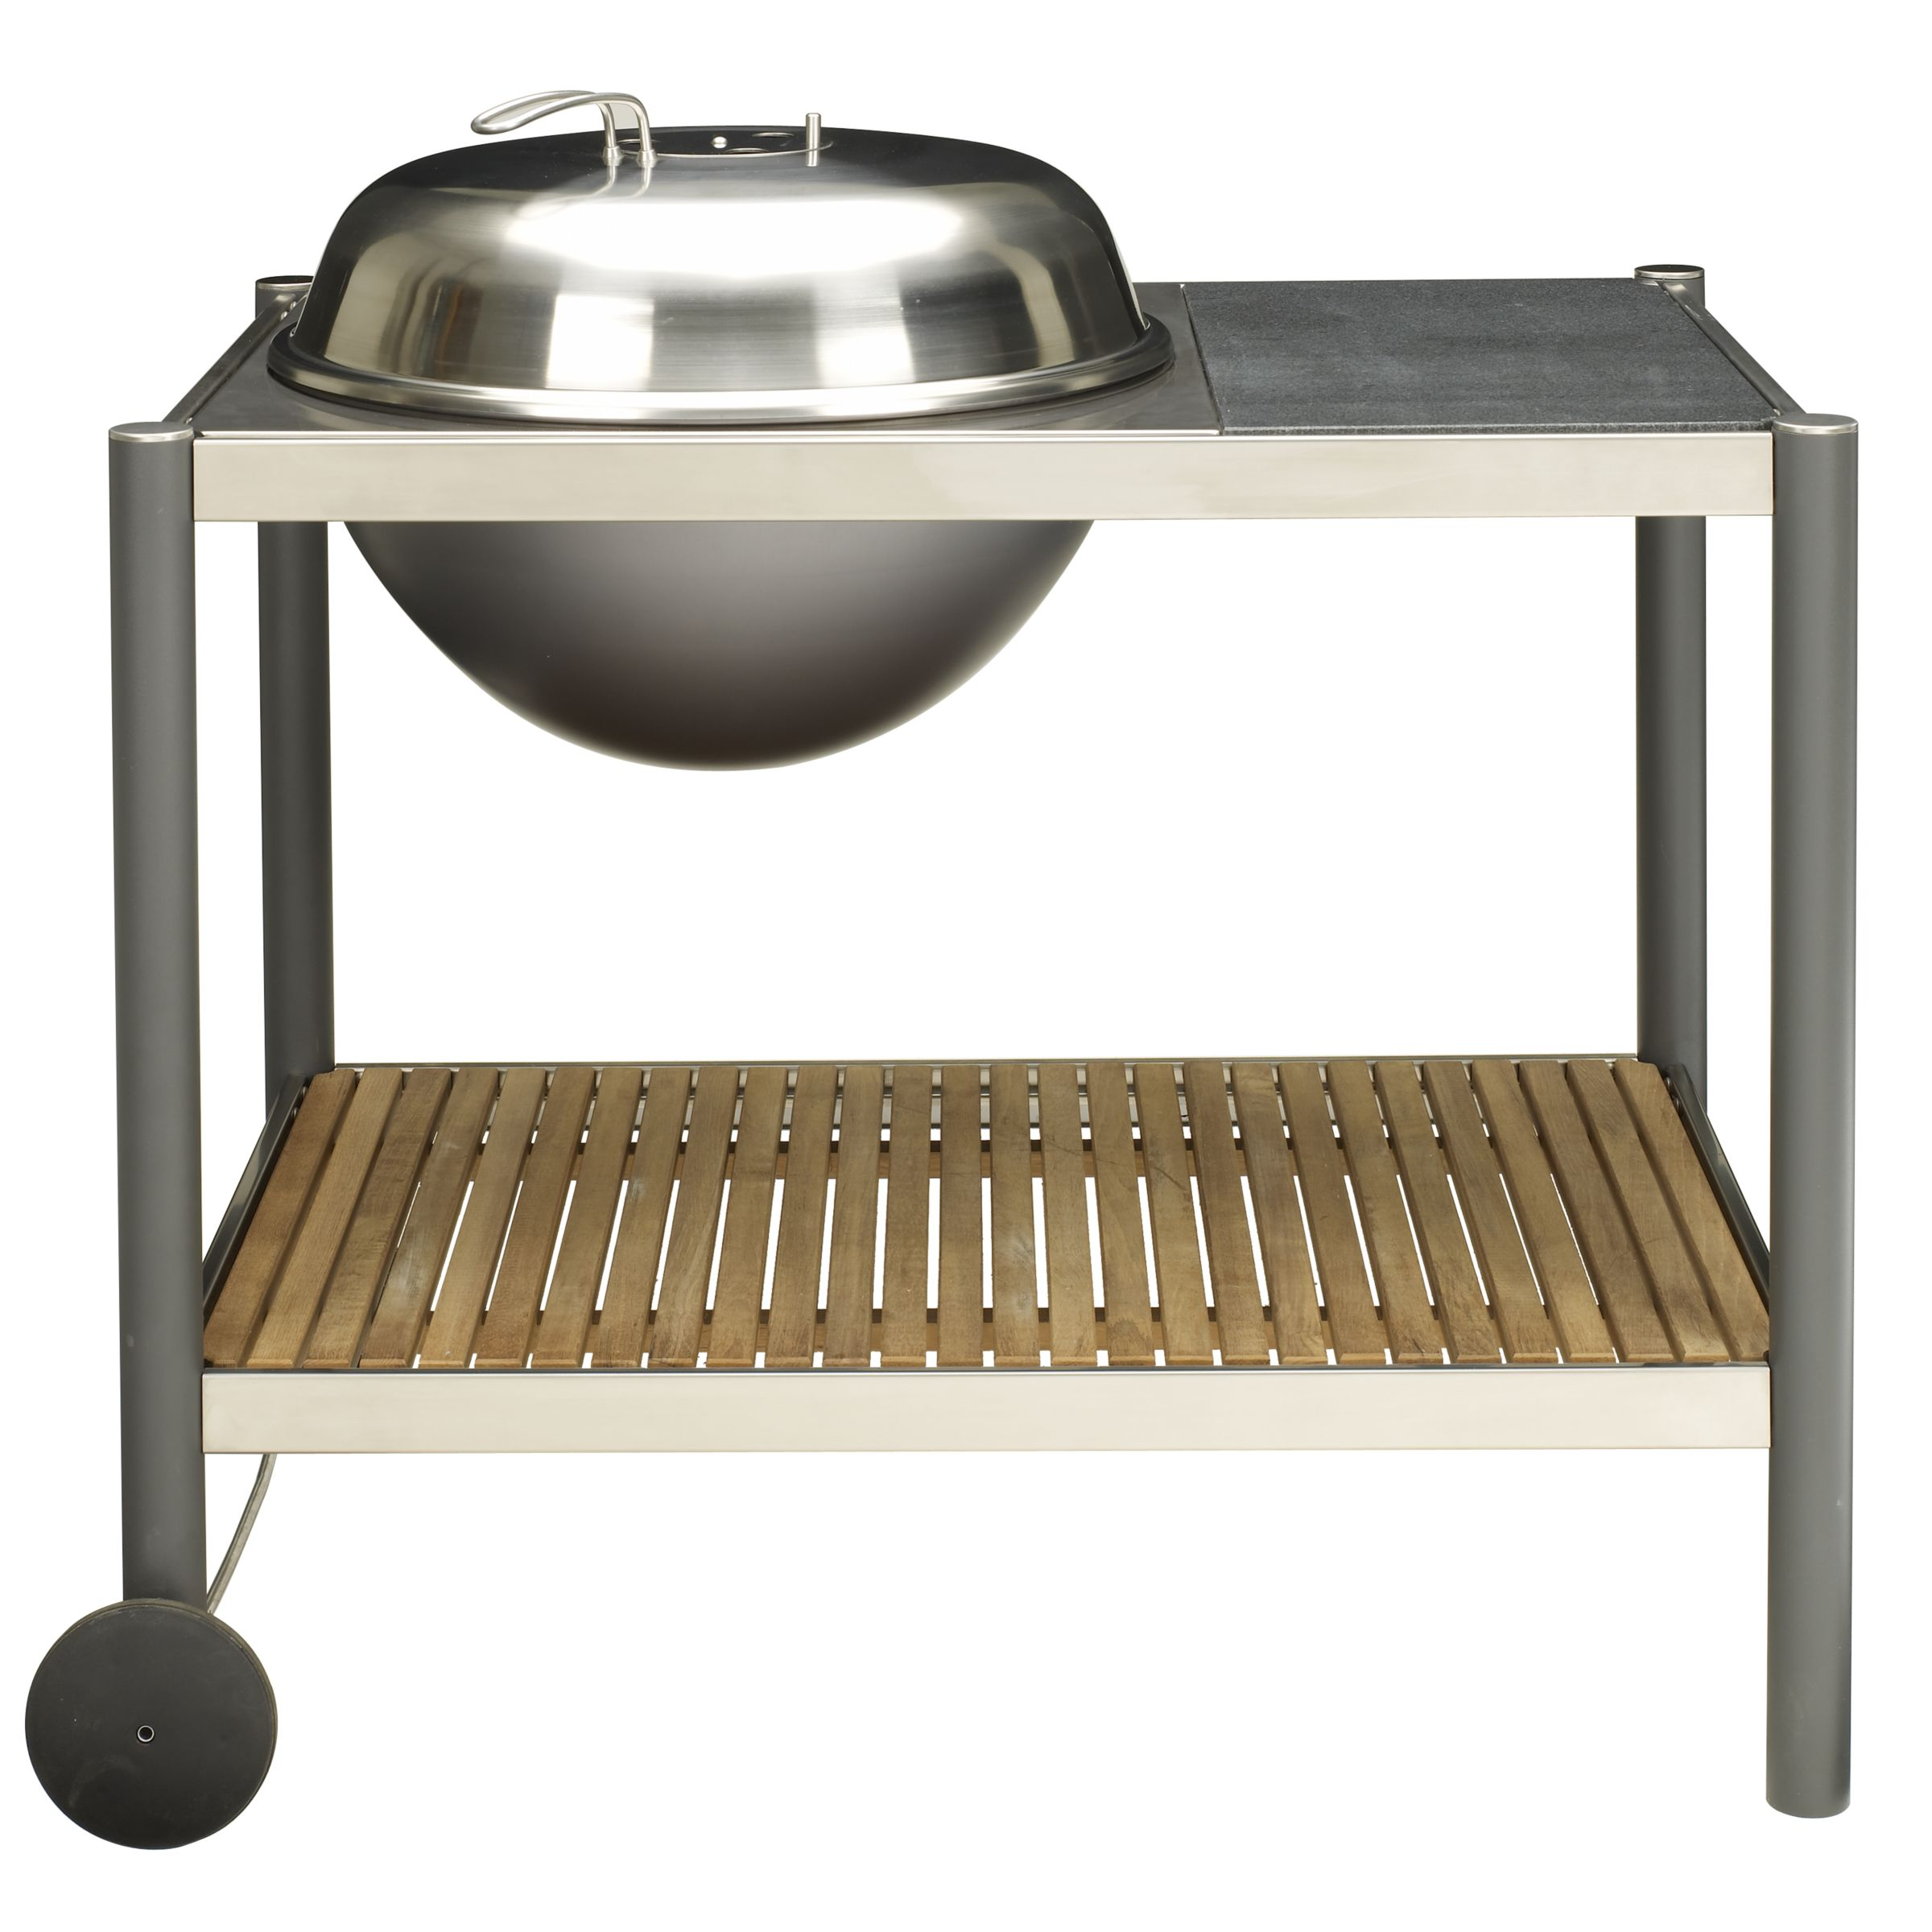 John Lewis JLT1 Trolley Charcoal Barbecue with Cover